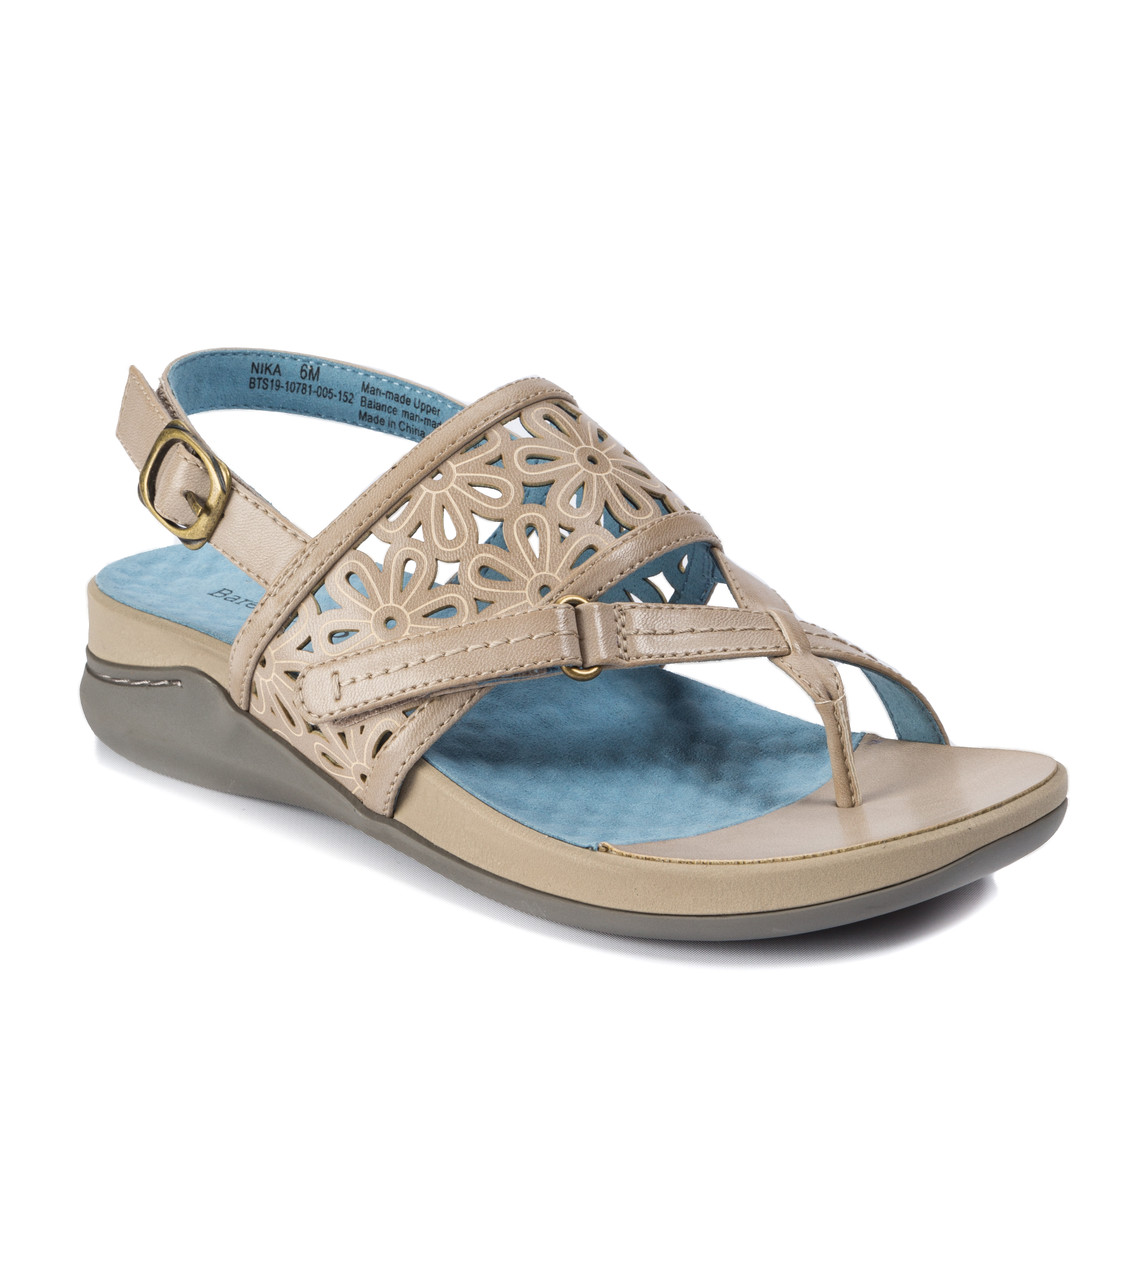 b6bc87abdff The laser cut flower details makes the Nika the perfect spring or summer  accessory! This comfort sandal features a buckle on the back strap and a  hook and ...